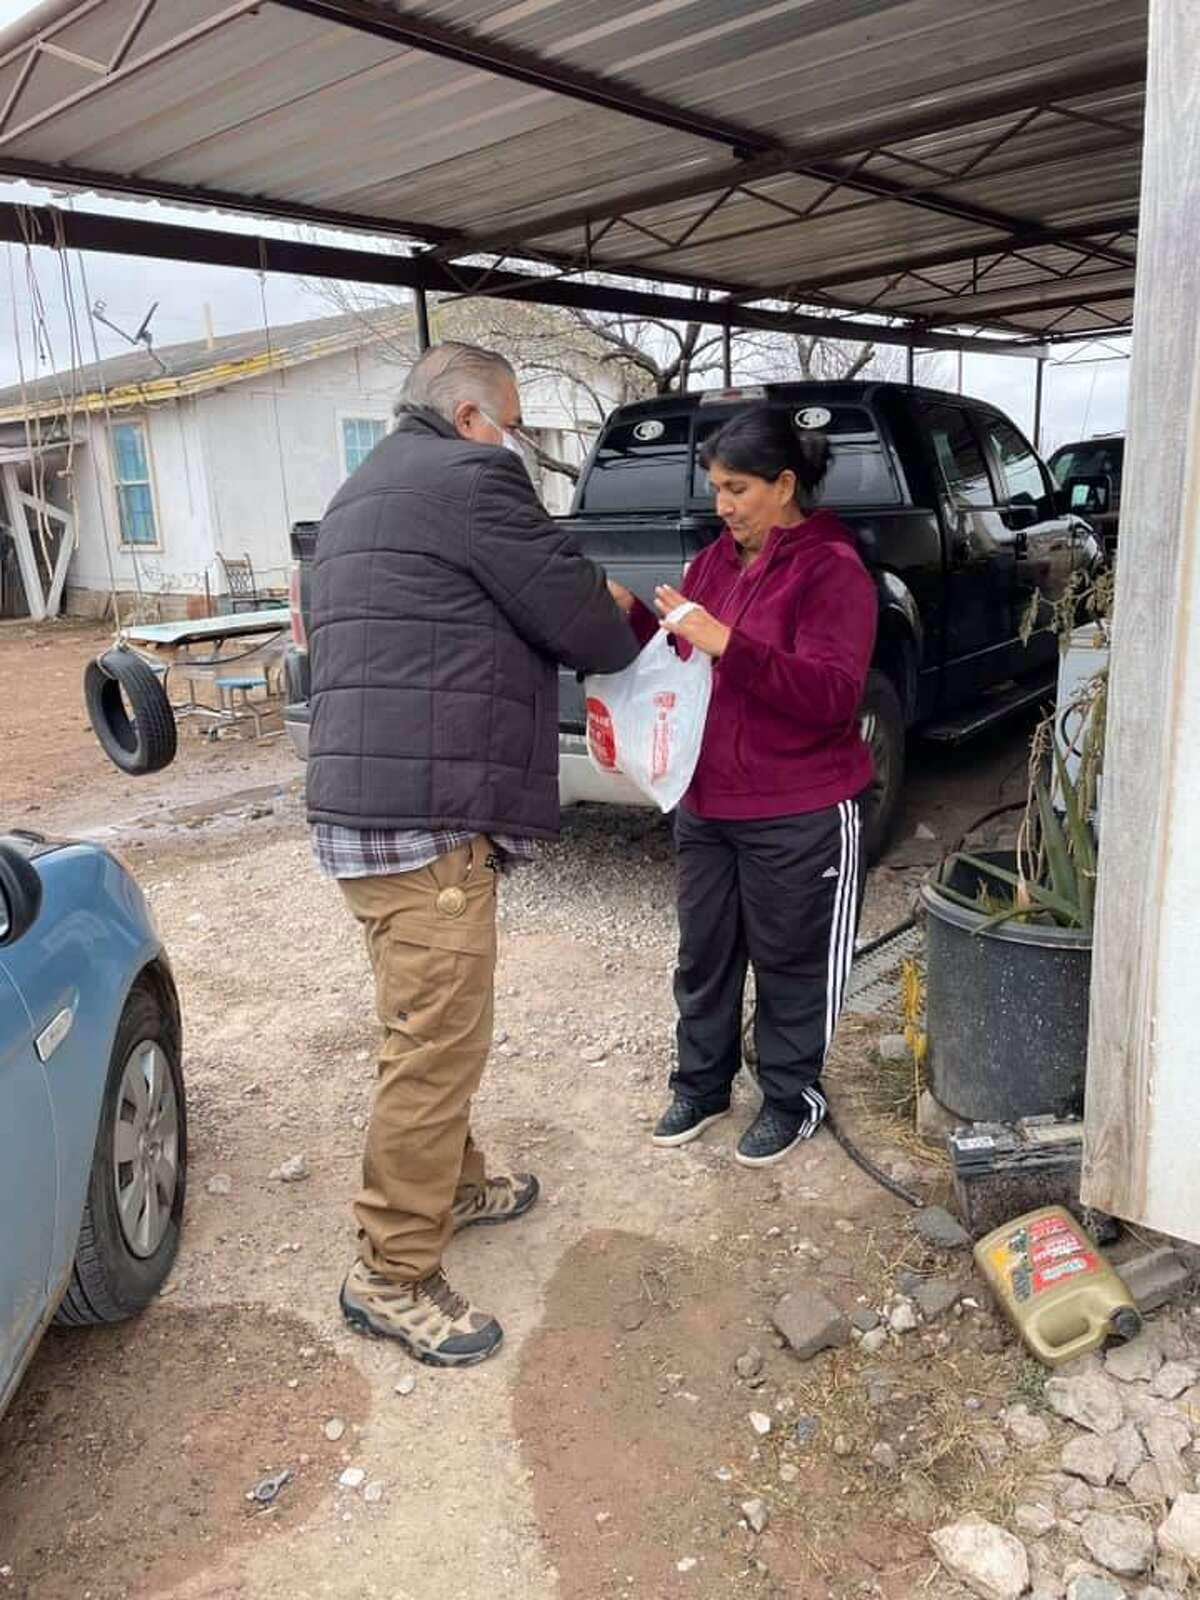 Sheriff Martin Cuellar and his office gave out food and water to Webb County residents in need.